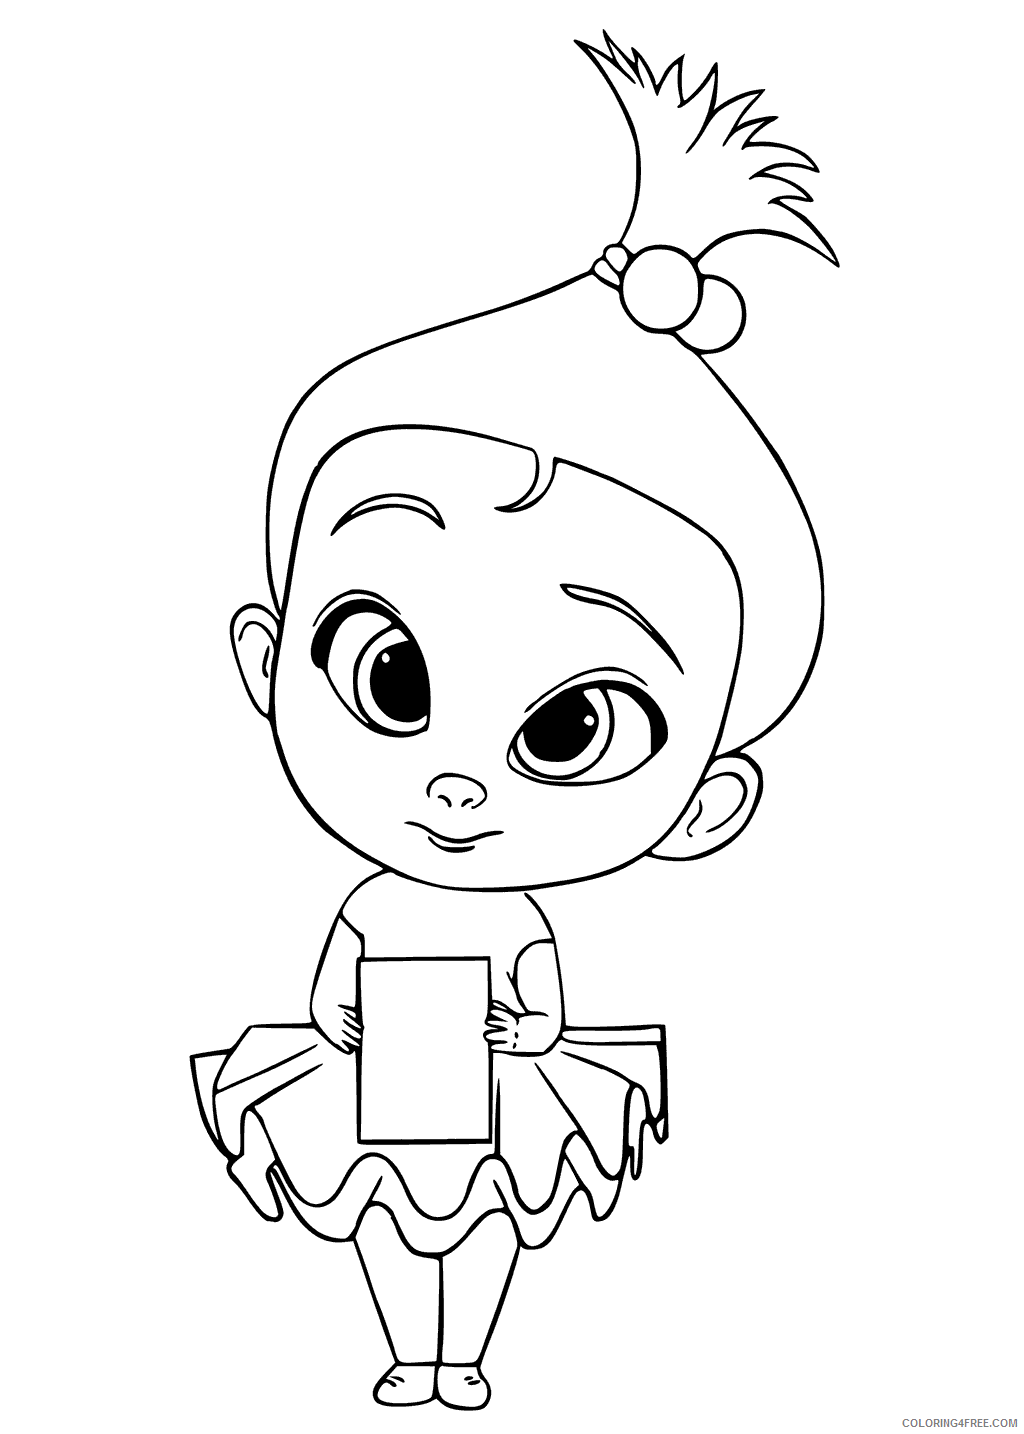 Boss Baby Coloring Pages TV Film Staci Boss Baby Printable 2020 01279 Coloring4free